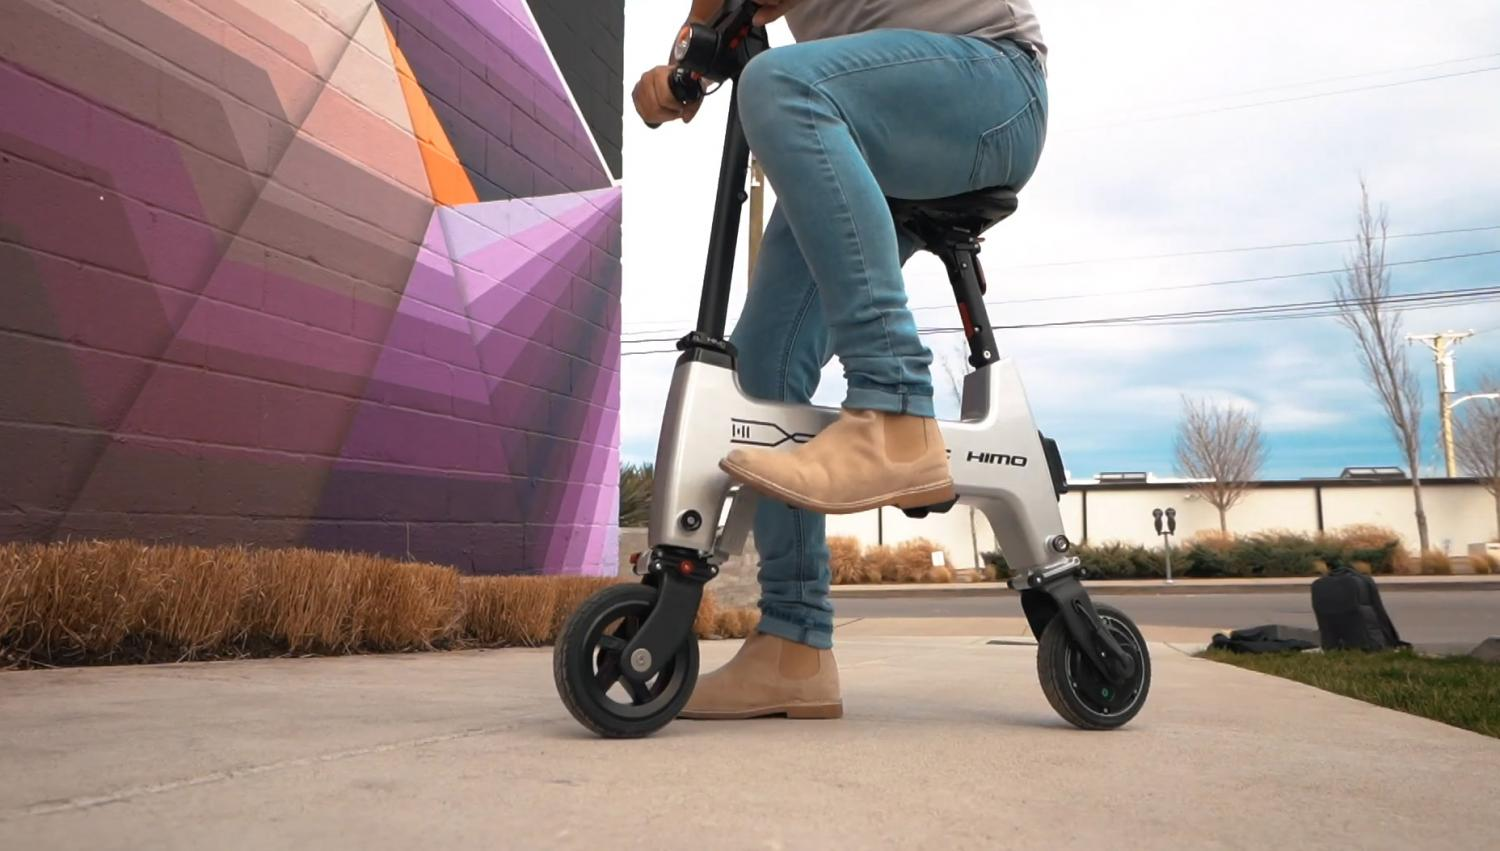 HIMO Folding E-Bike Collapses Down To Fit In Your Backpack - Tiny folding electric scooter